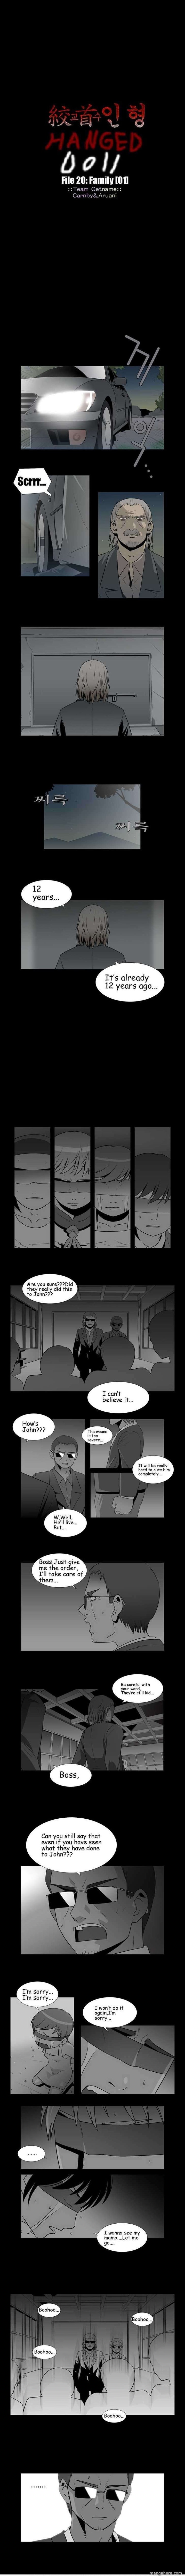 Hanged Doll 63 Page 1